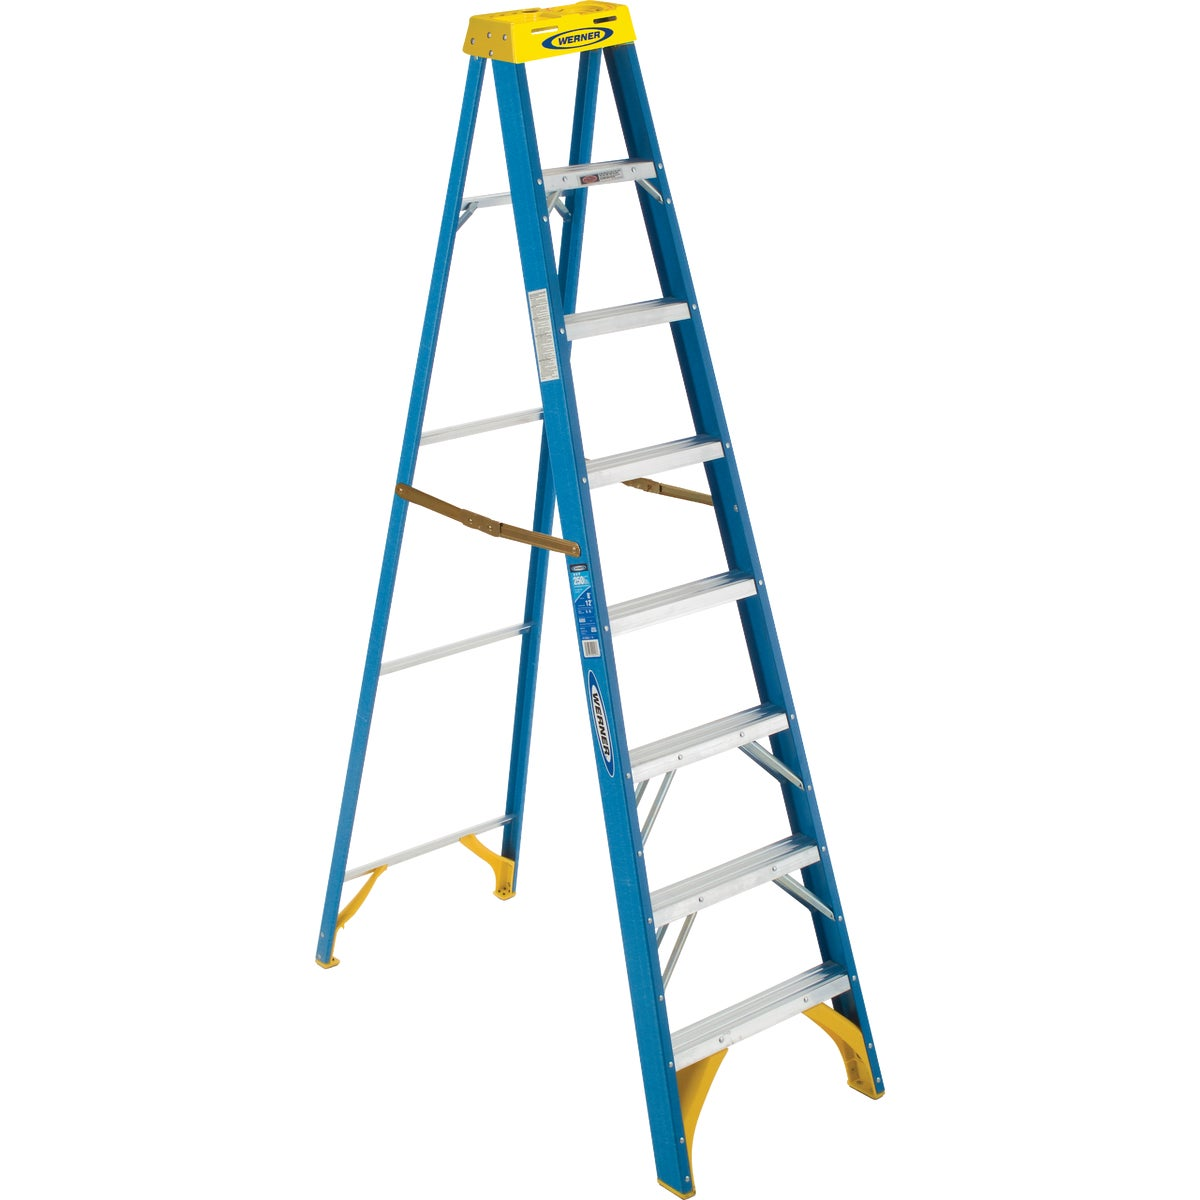 T-1 8' FBGL STEPLADDER - 6008 by Werner Co